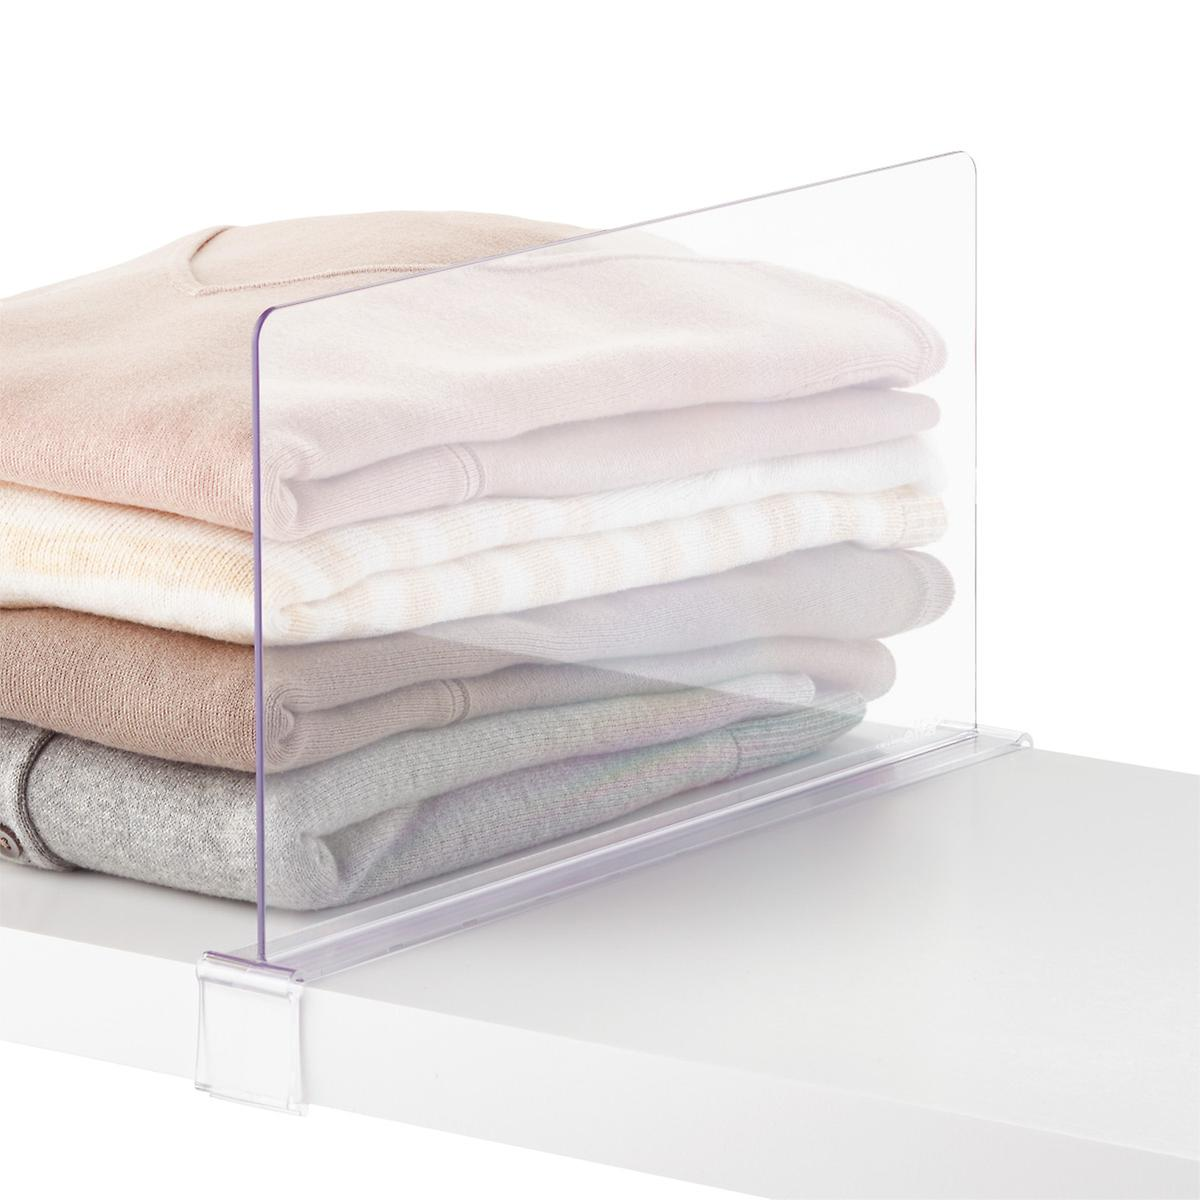 Available only at The Container Store, our Clear Shelf Divider is the perfect solution to organizing sweaters, towels, handbags and more. A valet knob on the end creates extra hanging space. The clear construction and minimal design make for a seamless look in any closet!/5(10).